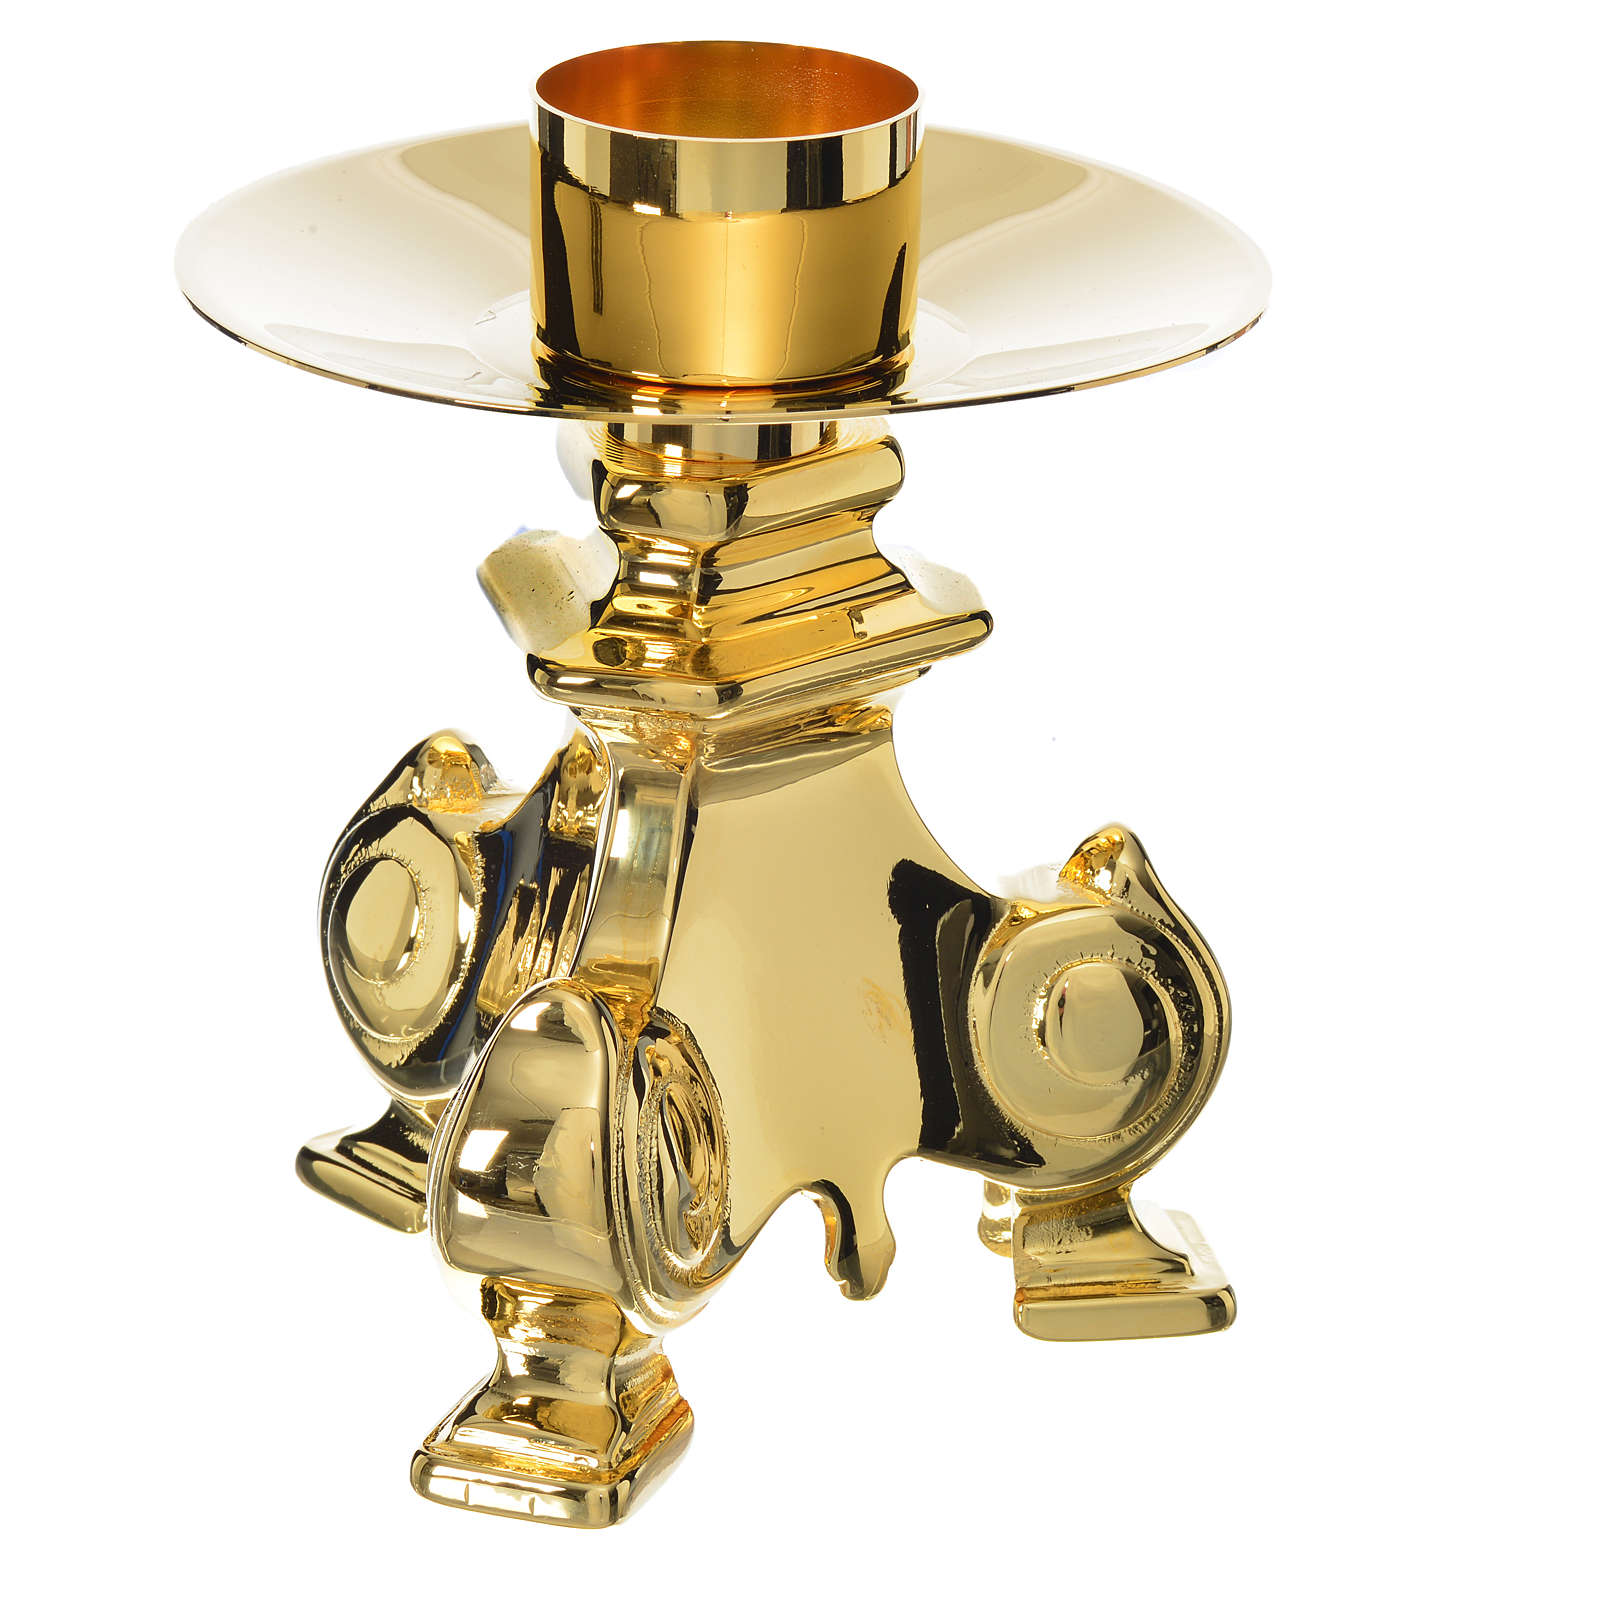 Baroque candlestick in golden brass, polished 4